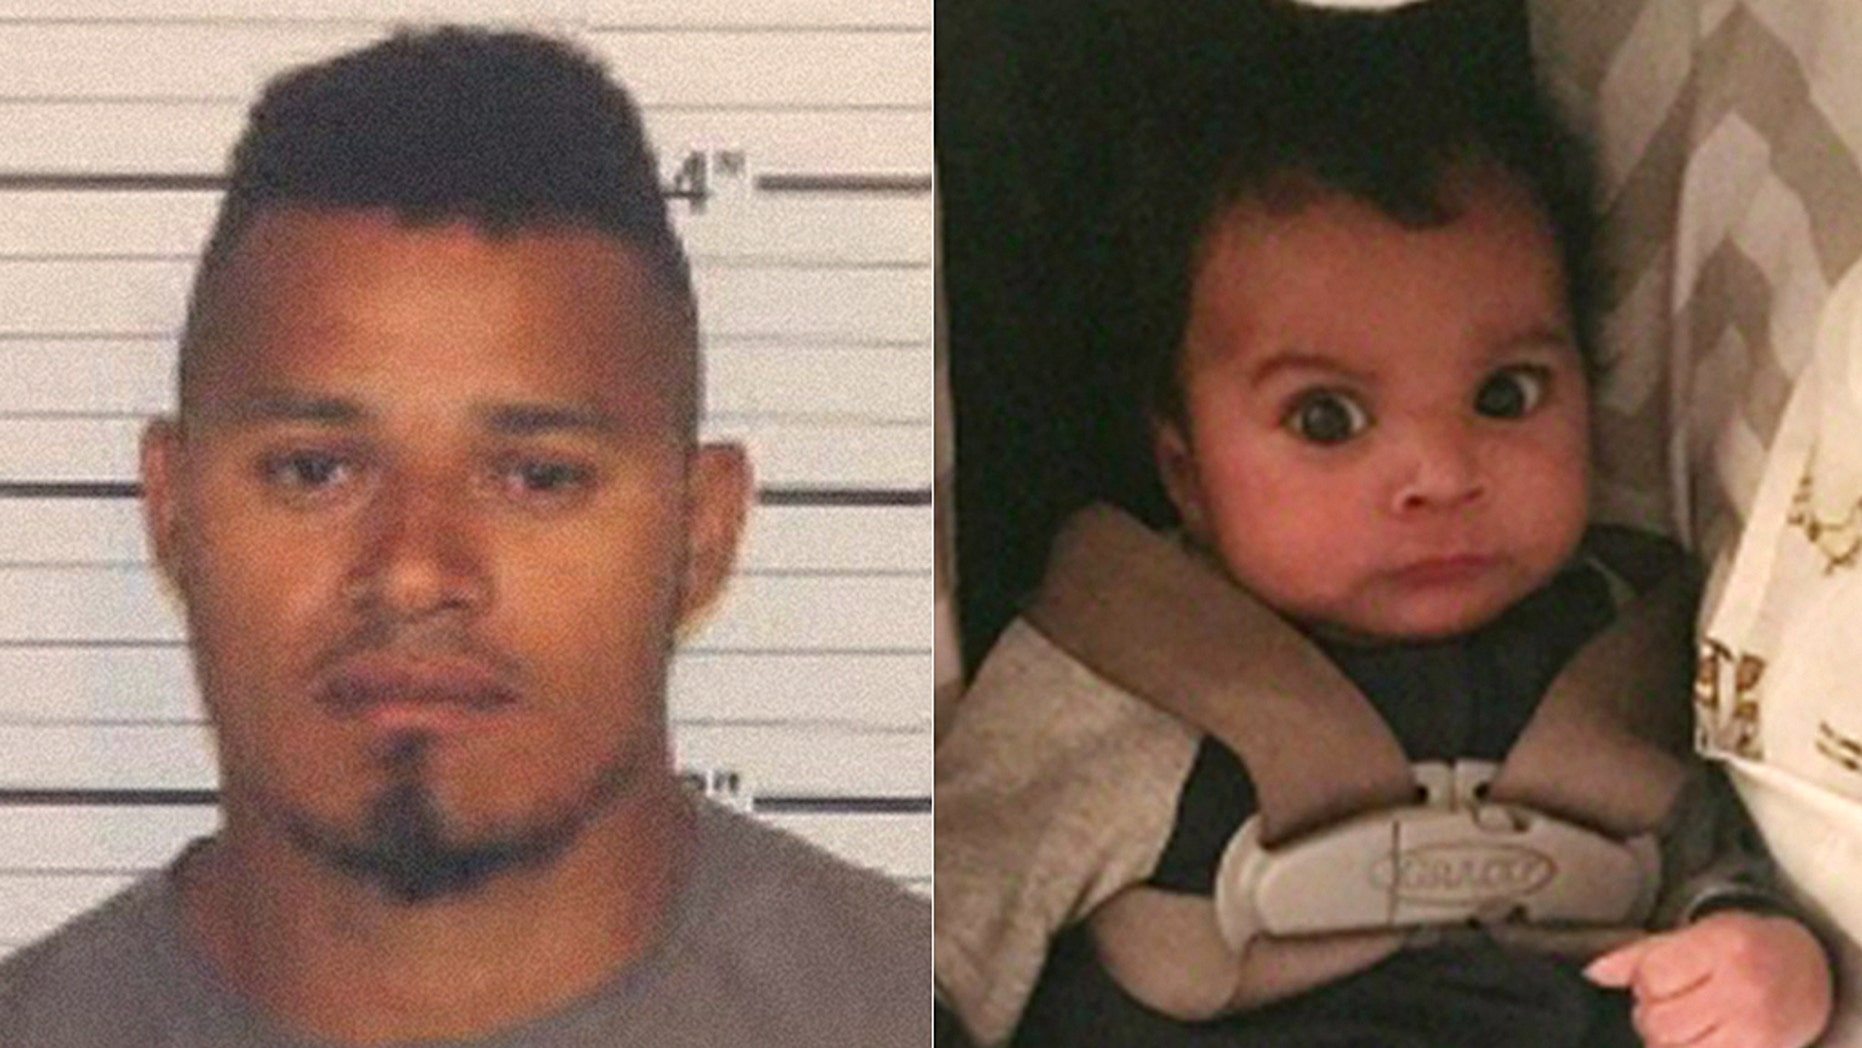 Carlos Zuniga-Aviles, a 33-year-old Honduran national, has used multiple aliases, including the fake name of Jose Agurcia-Avila he gave police in Memphis, Tennessee, following his arrest in the boy's death earlier this month, US Immigration and Customs Enforcement officials said.